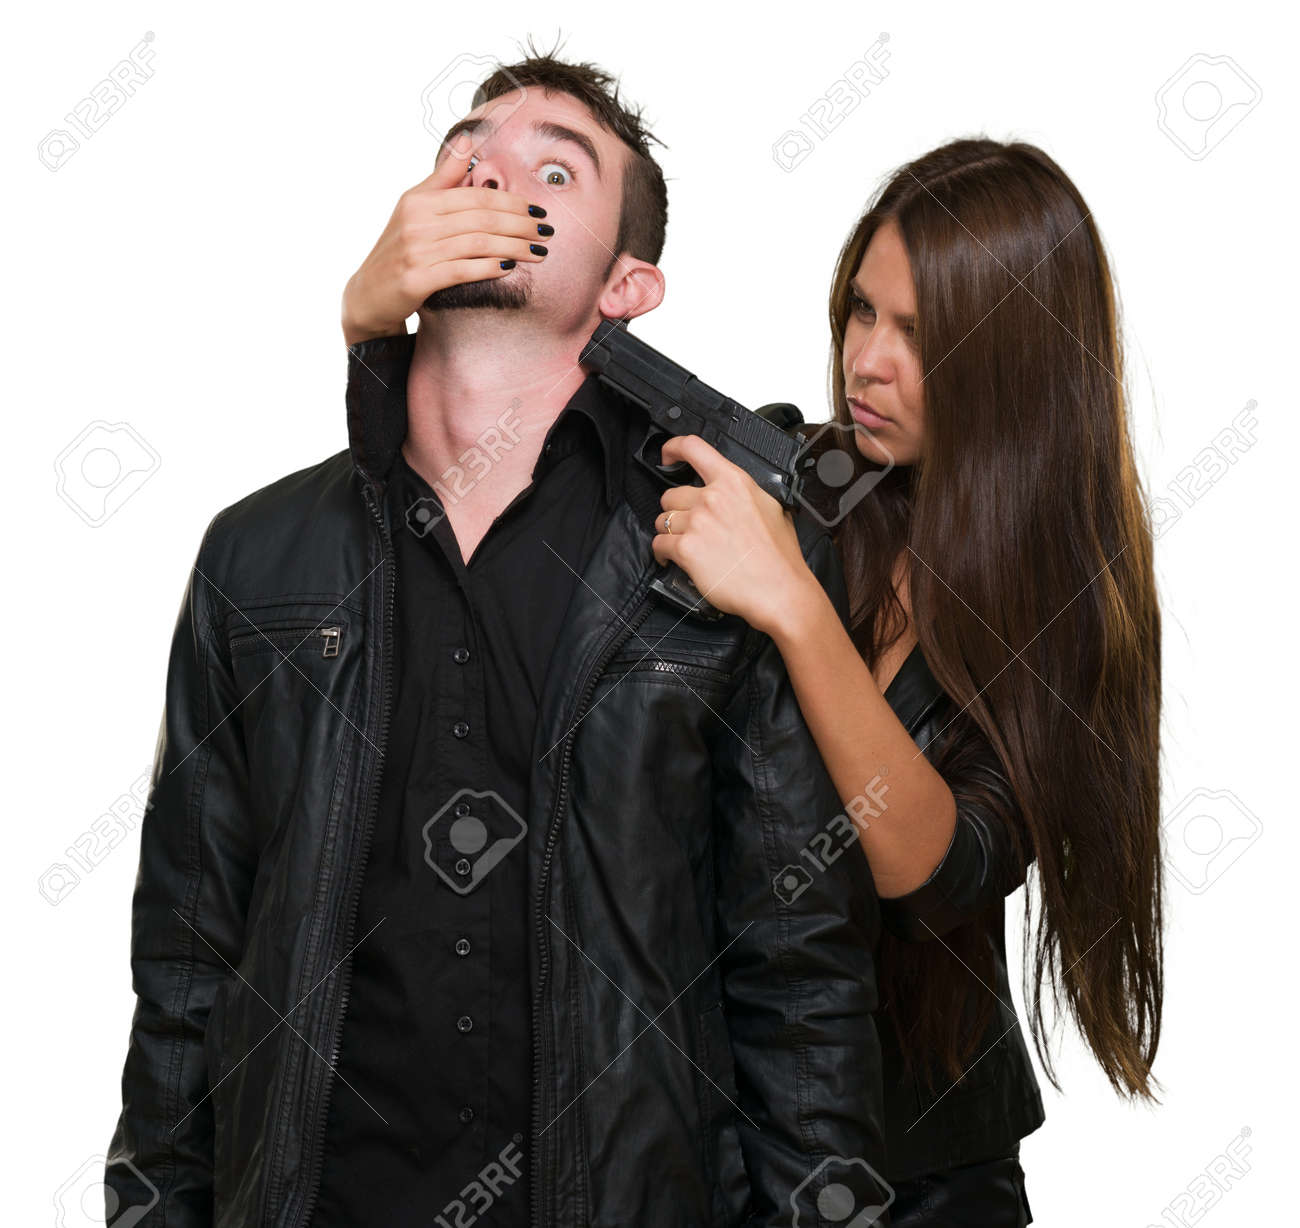 Criminal With A Gun Threatening Young Woman On White Background Stock Photo - 16672523